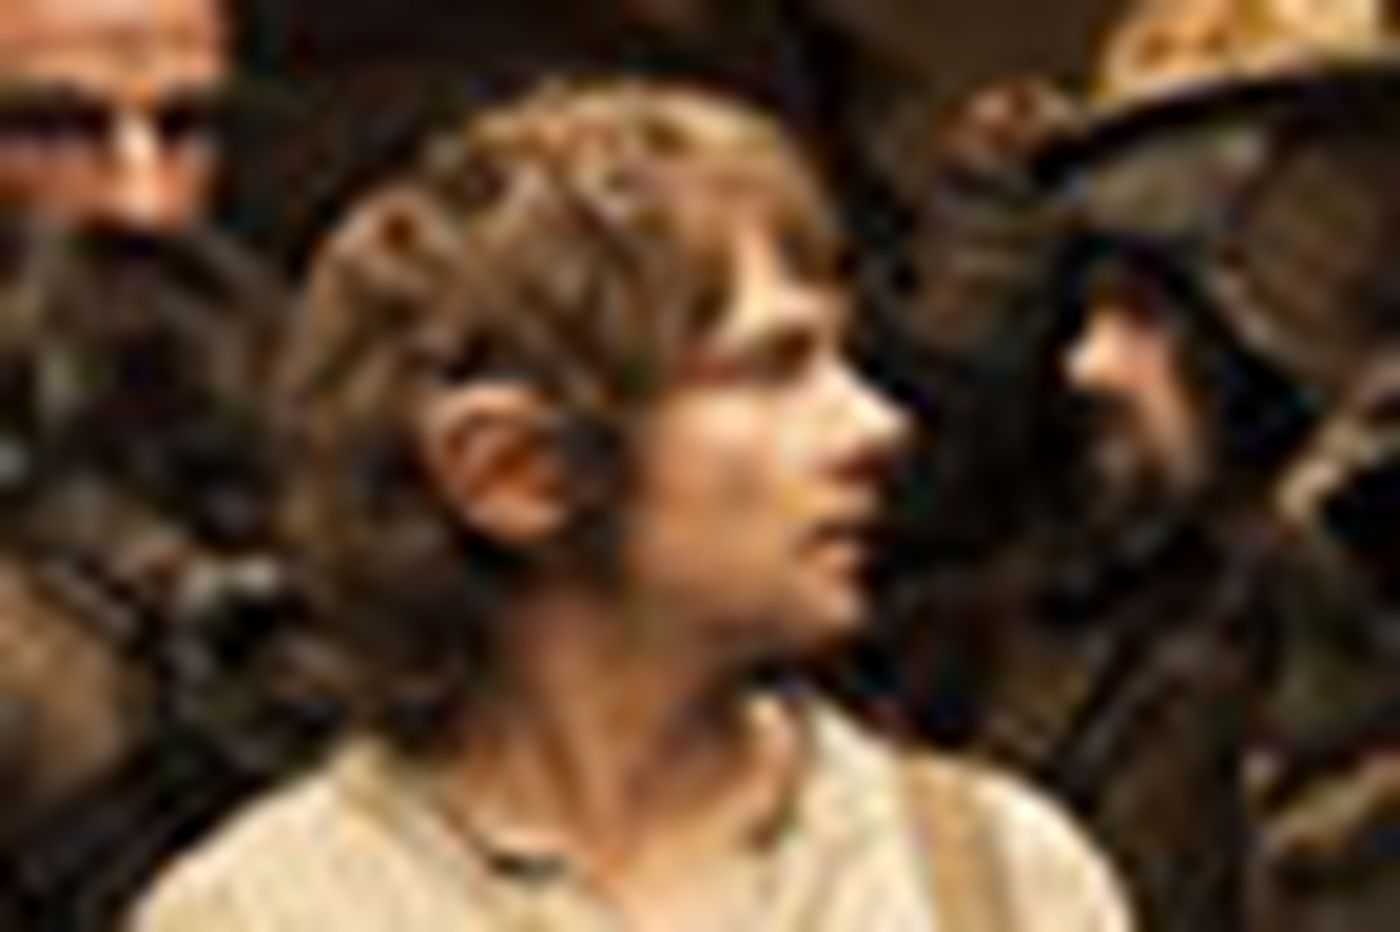 Sideshow: 'The Hobbit' is still on top